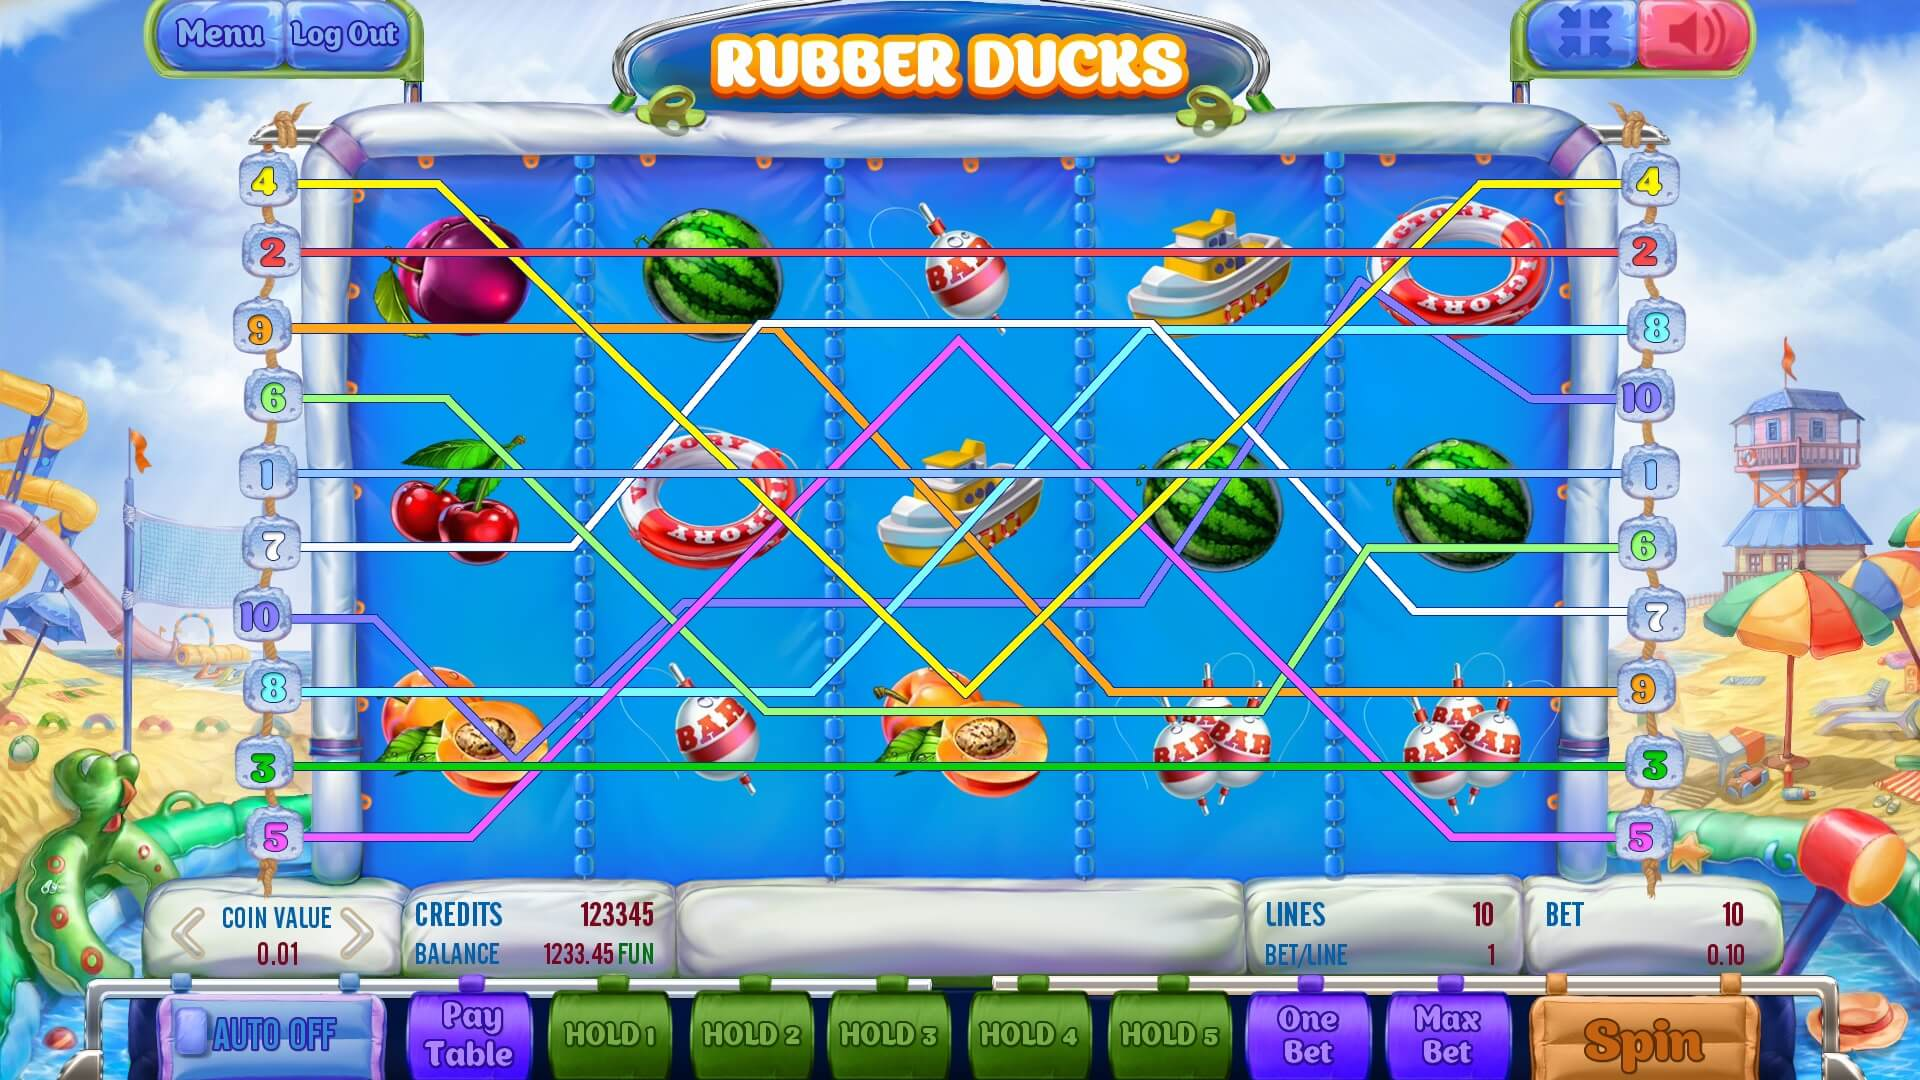 Rubber Ducks screenshot 1